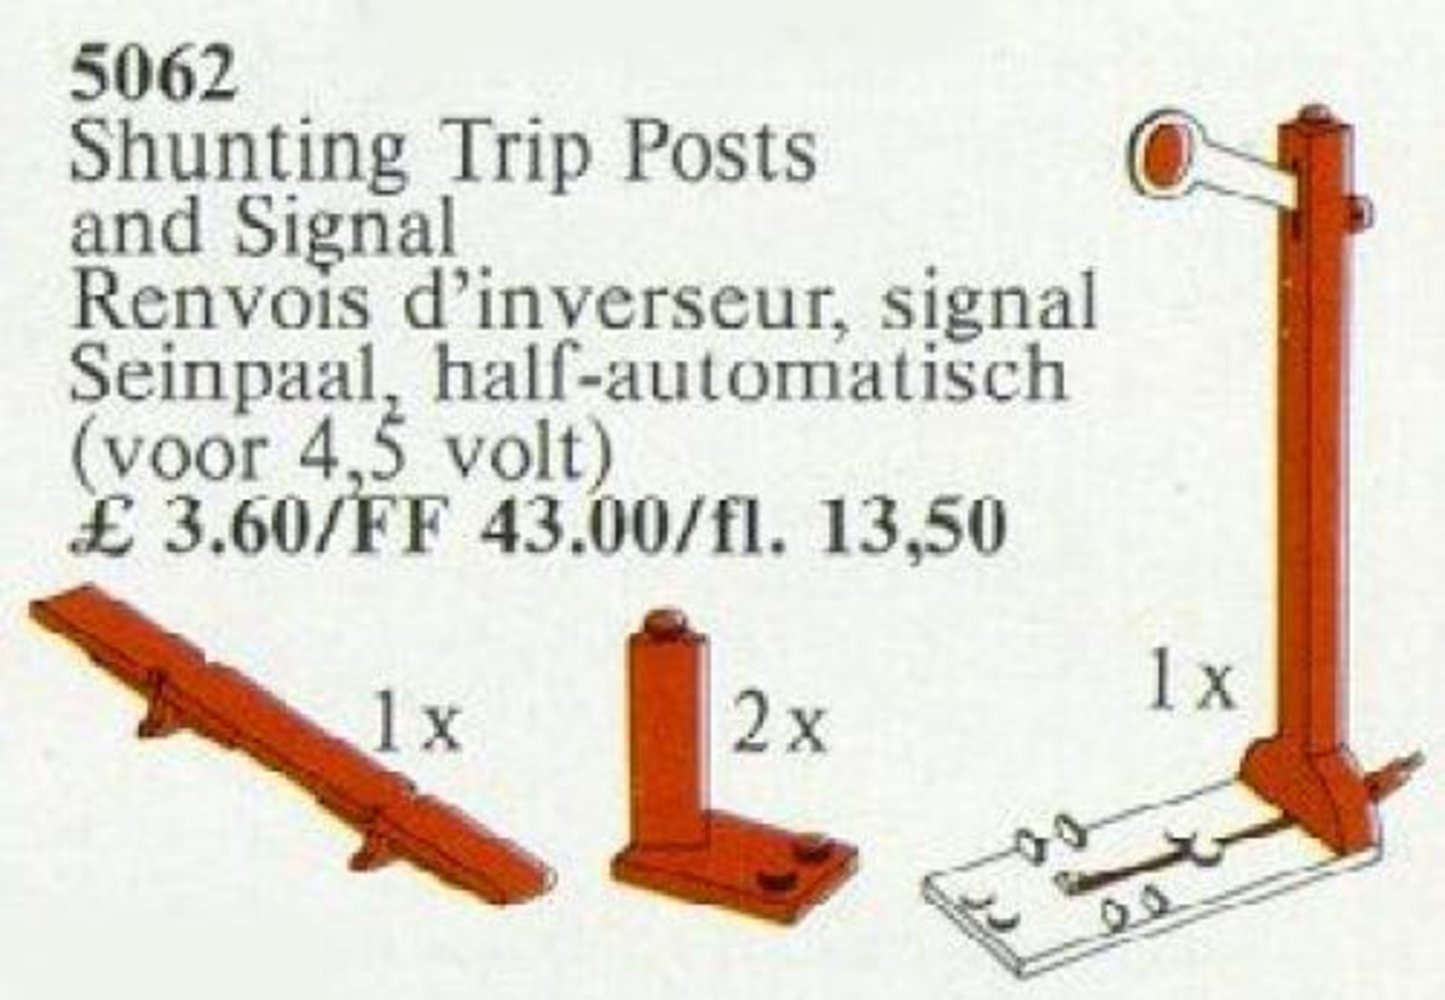 Shunting Trip Posts and Signal